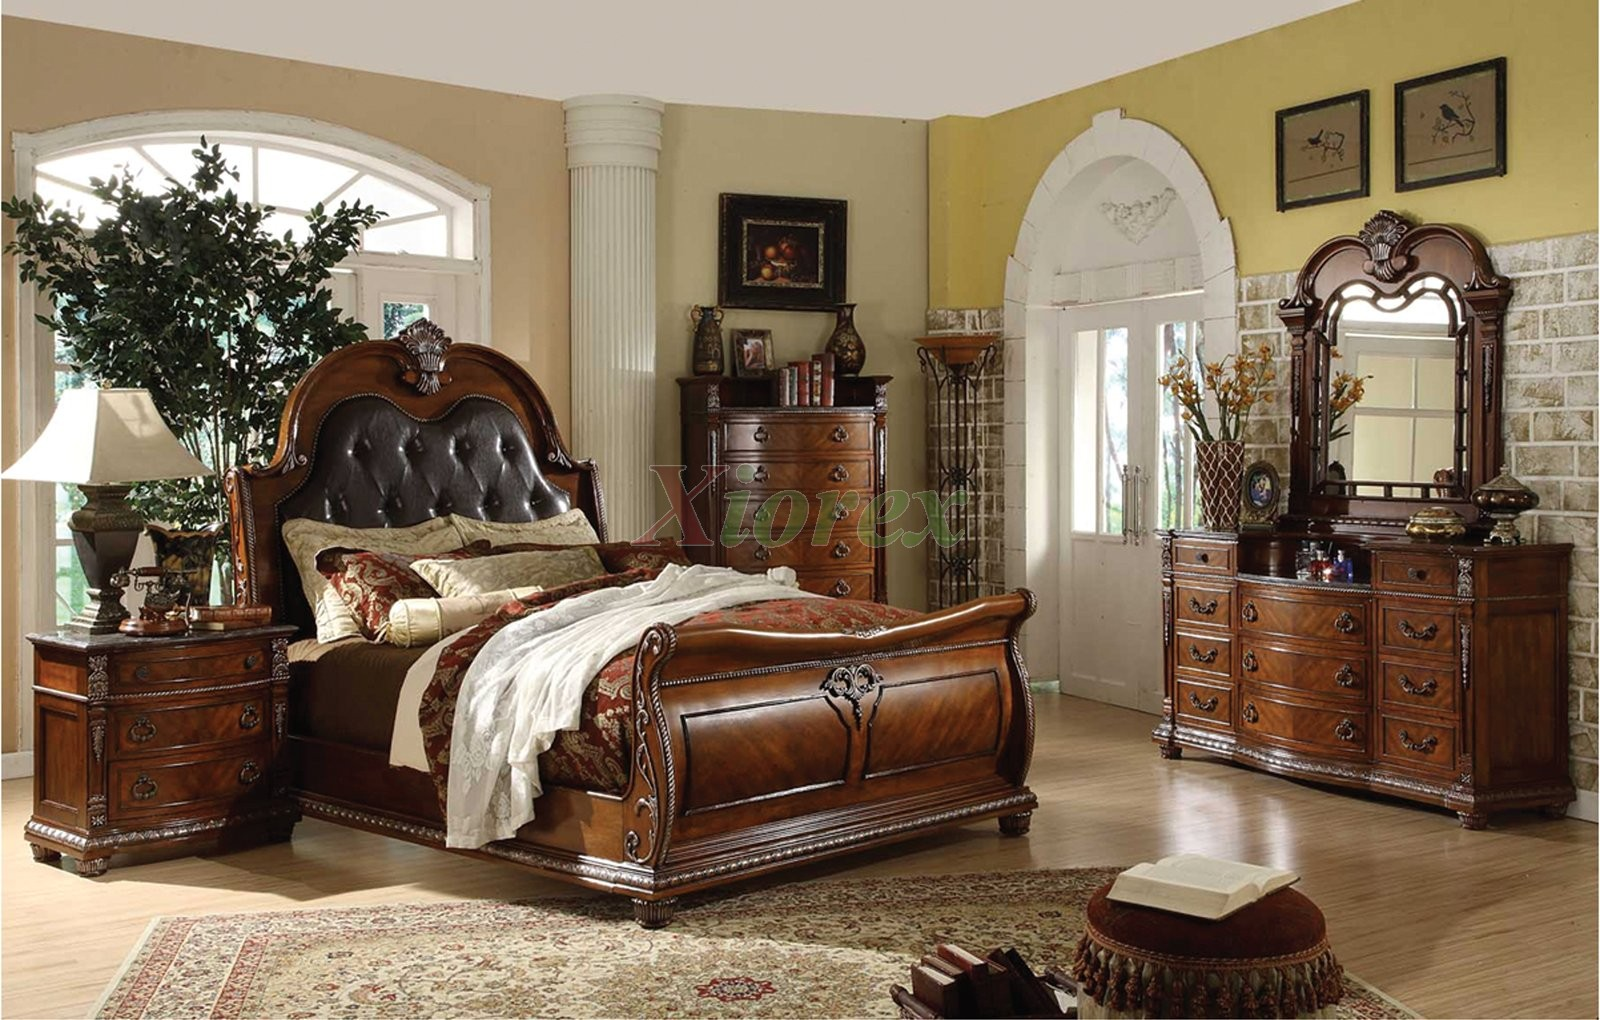 awesome leather headboard bedroom set ideas - rooms design ideas